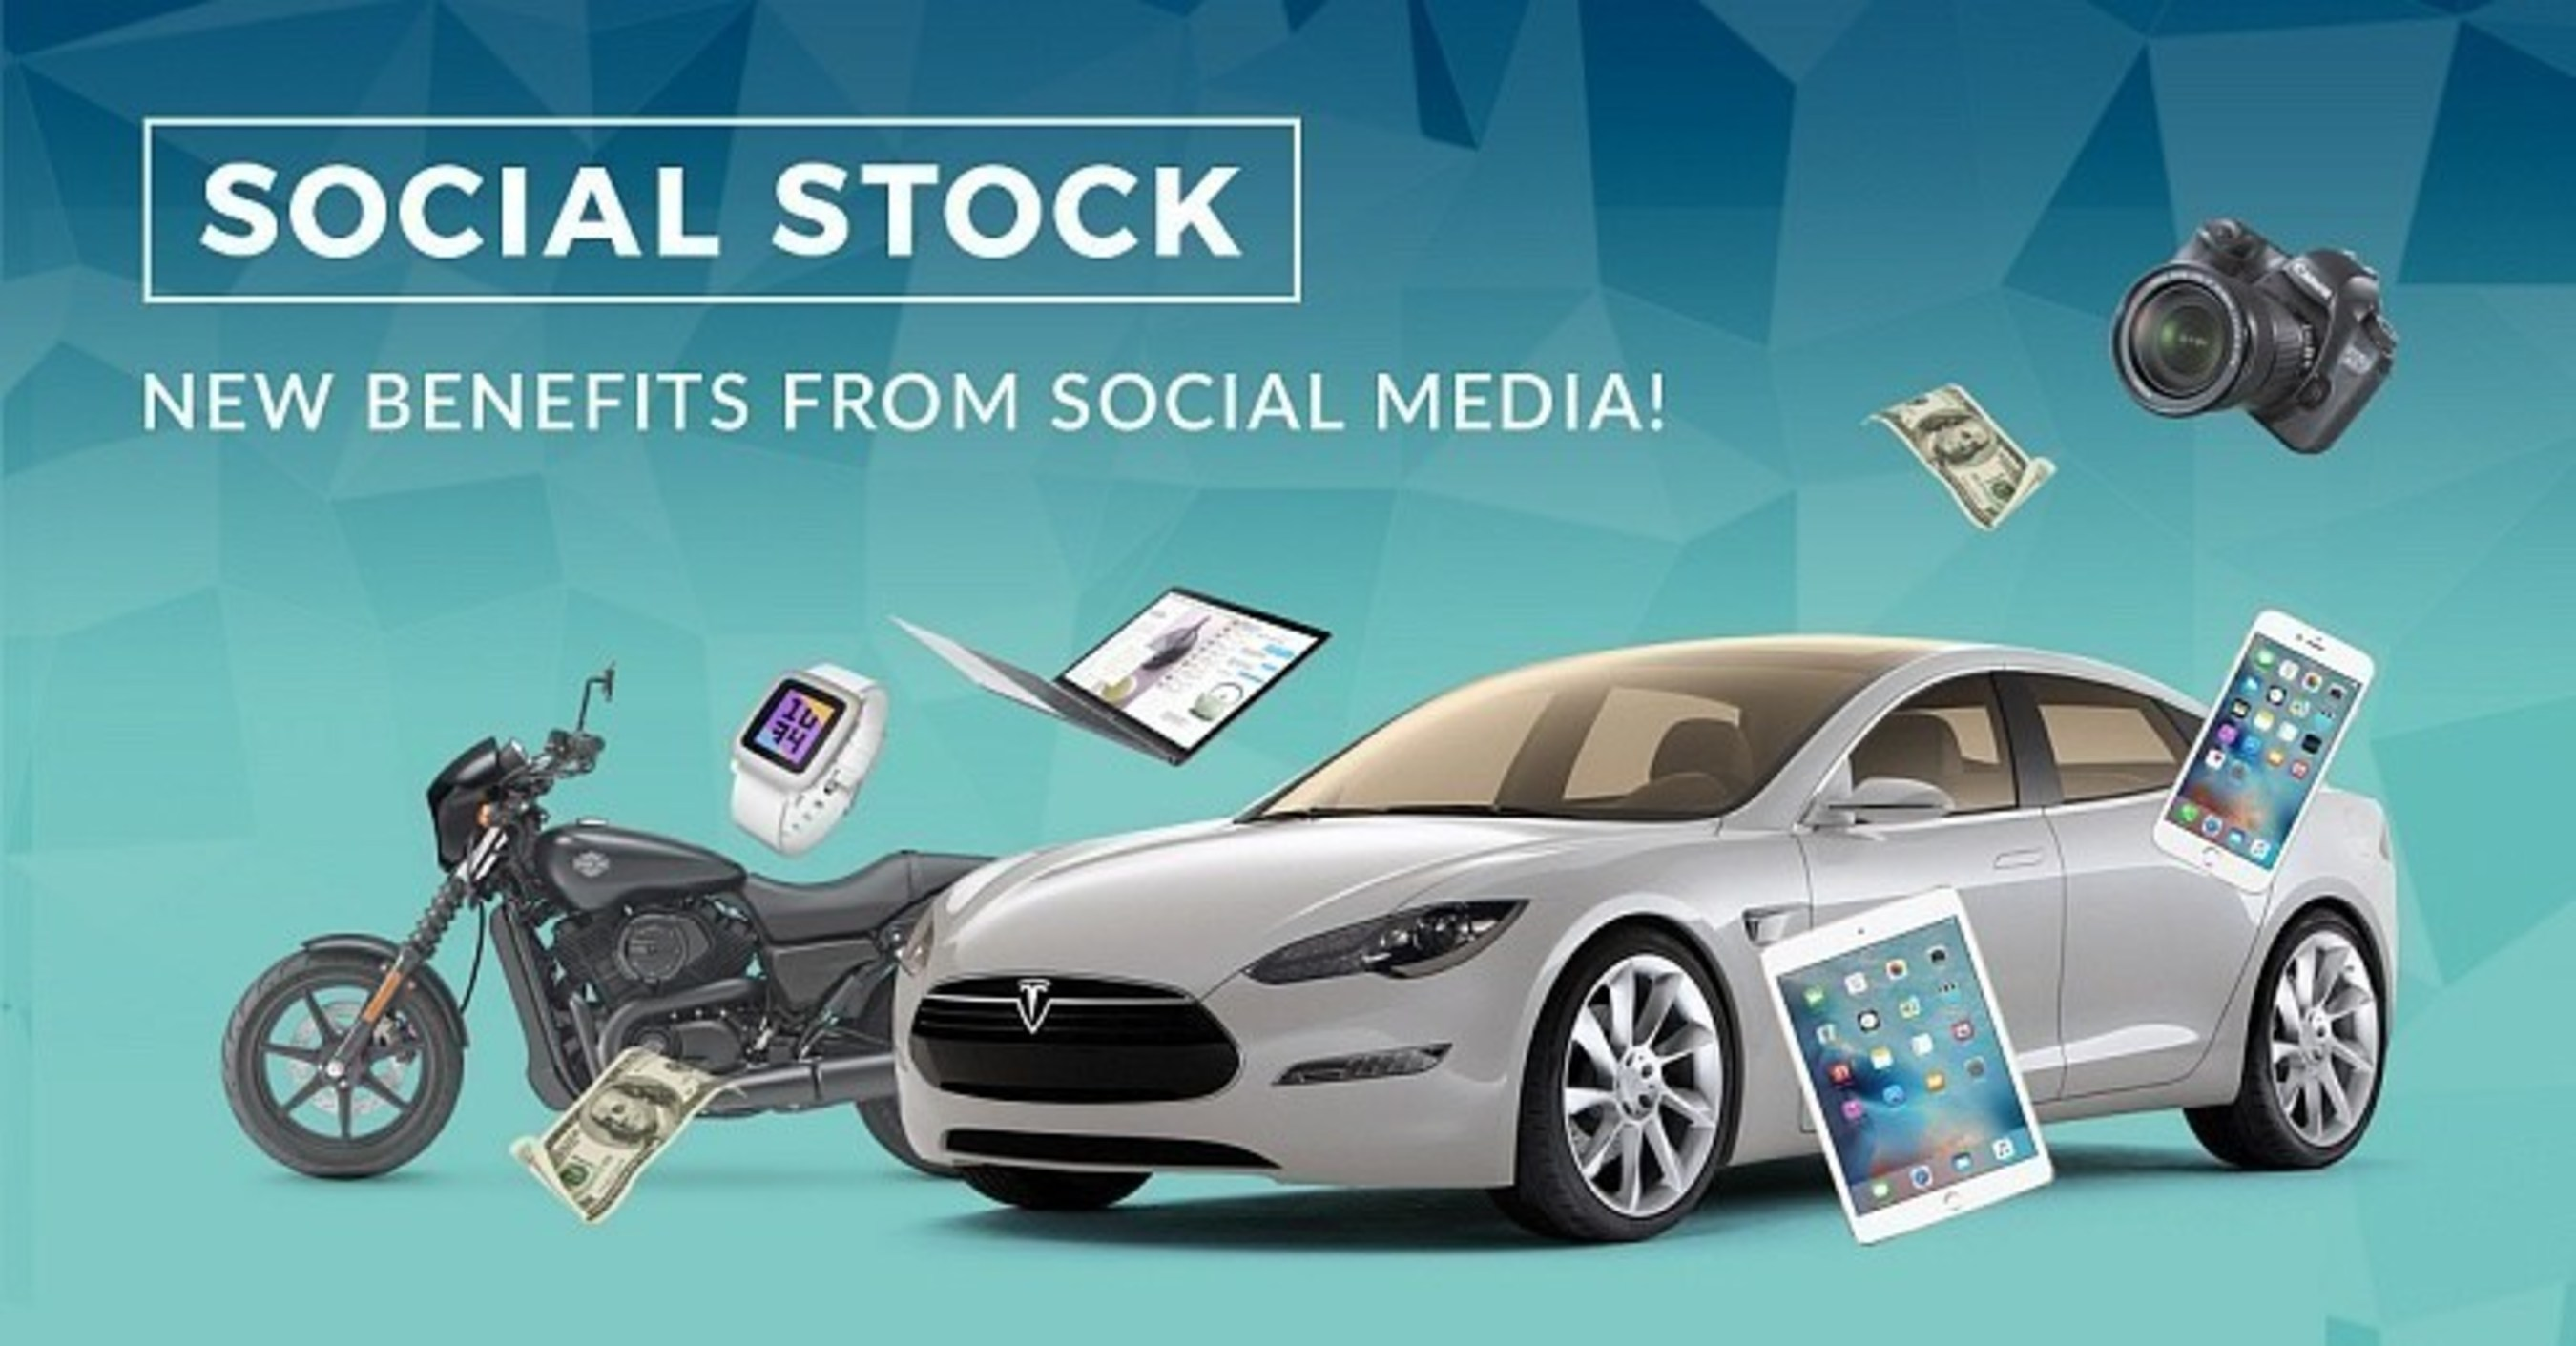 TemplateMonster Launches Social Media Project that Offers a Tesla Model S as a Prize